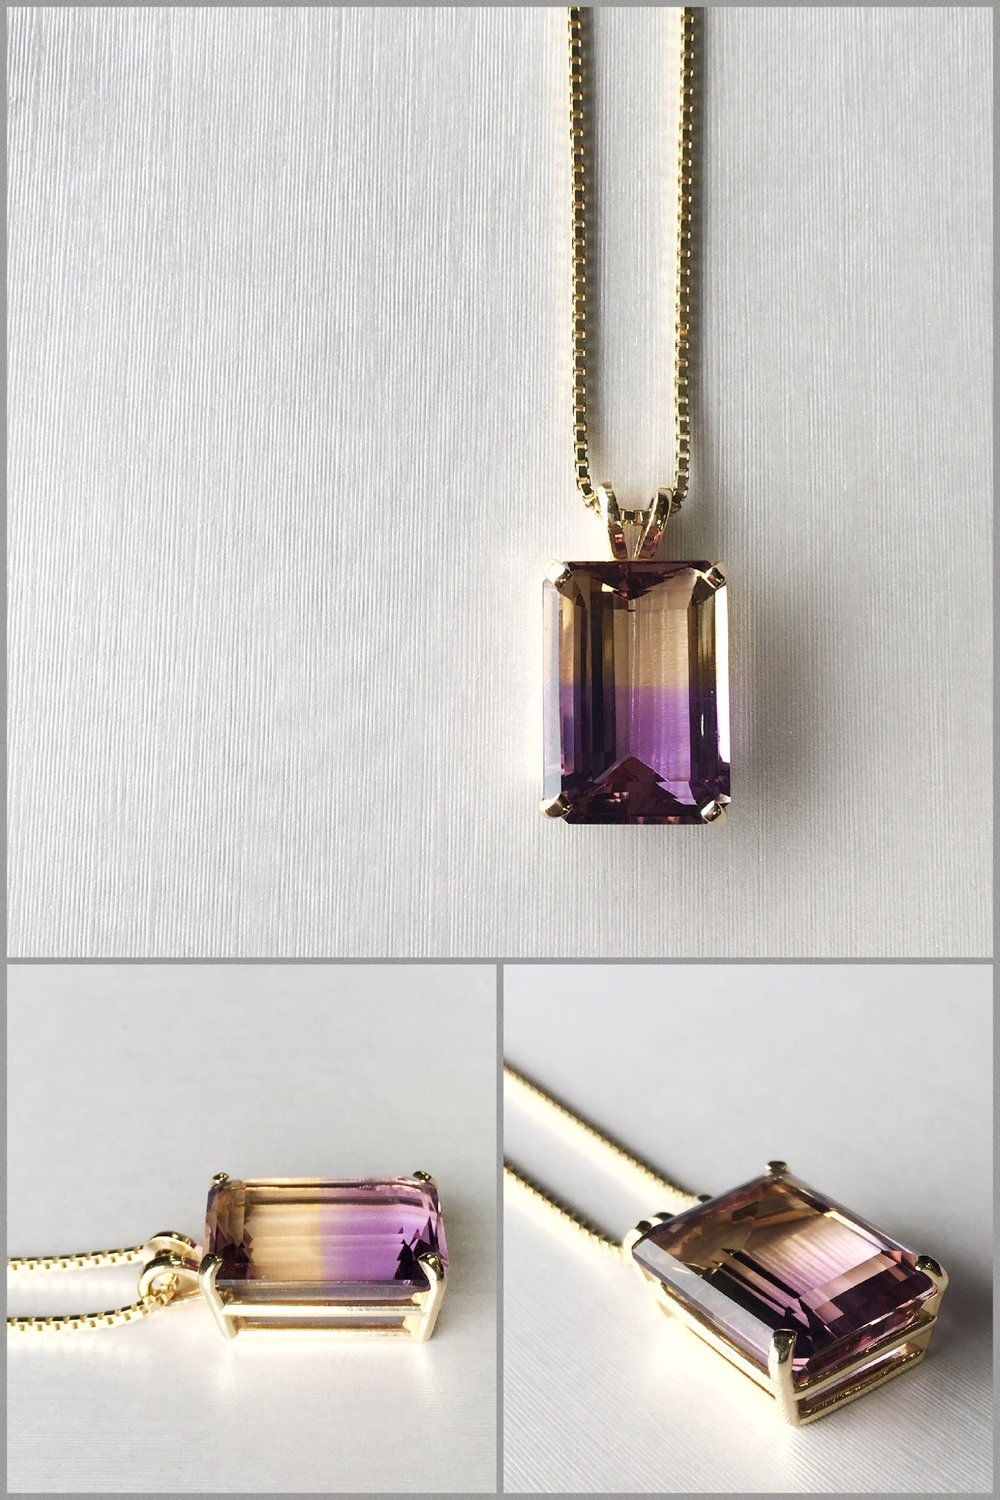 Emerald Cut Ametrine set in 14K Yellow Gold Setting.